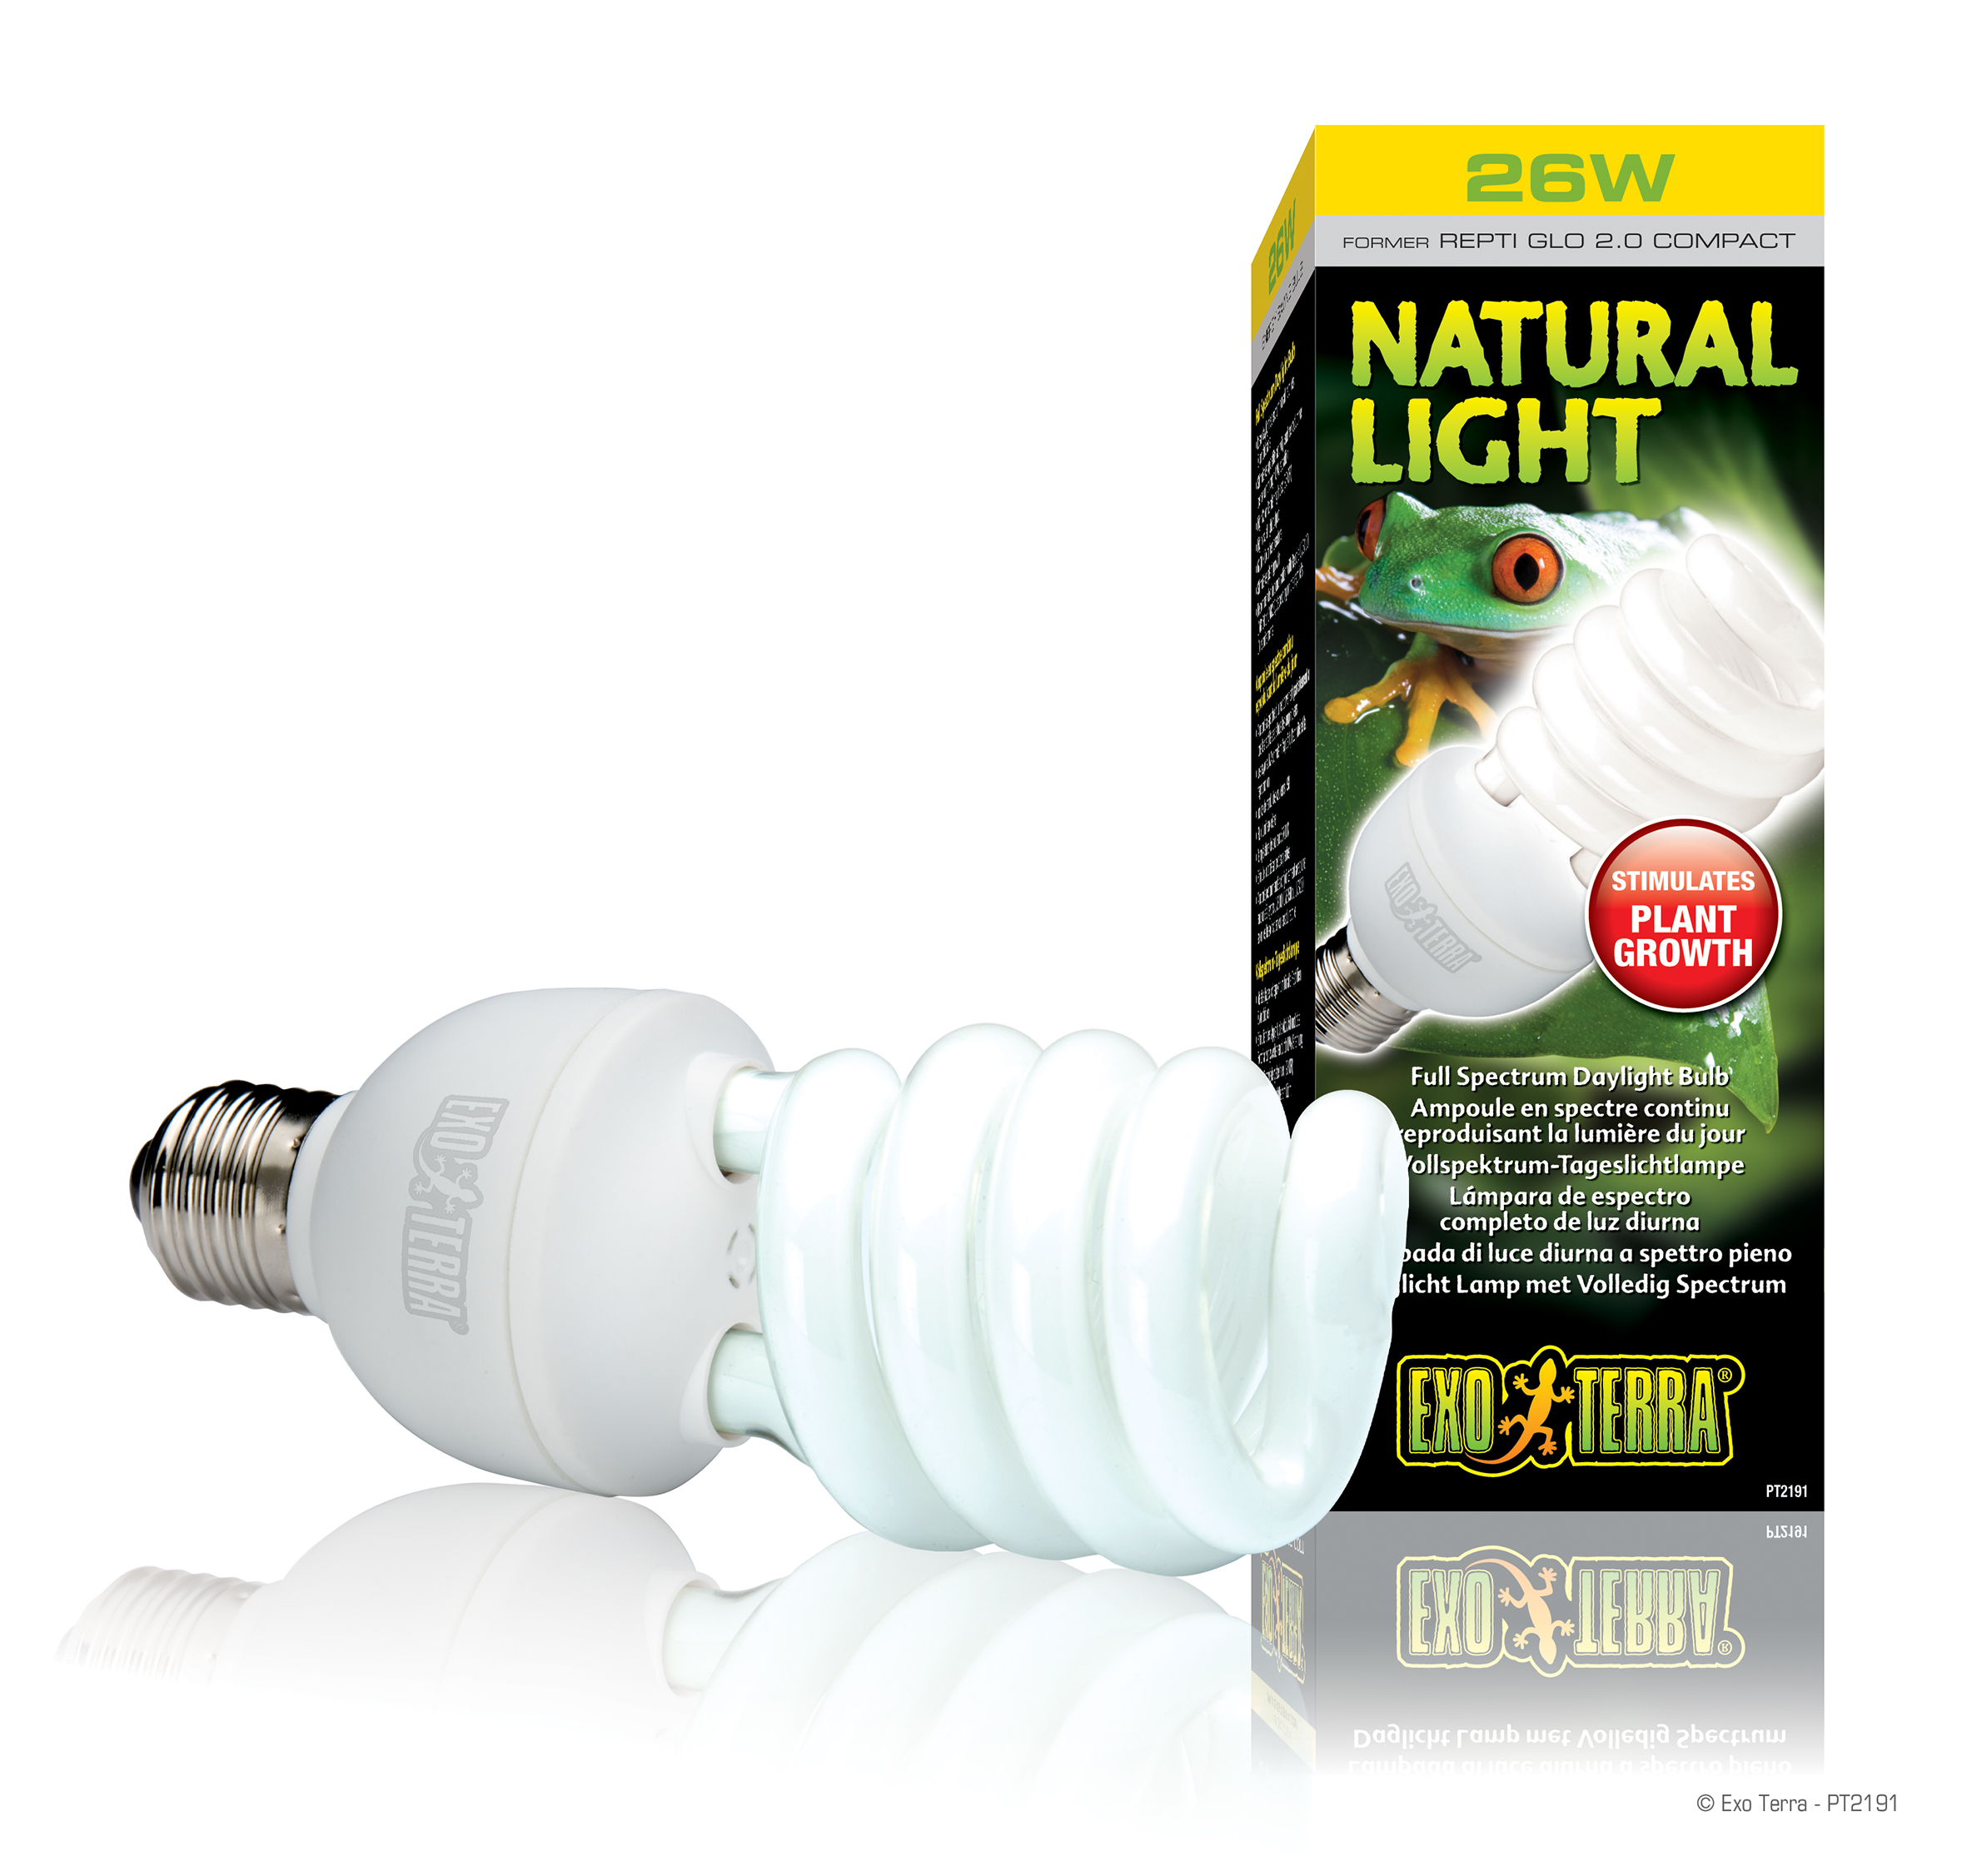 Exo Terra Natural Light Full Spectrum Daylight Bulb